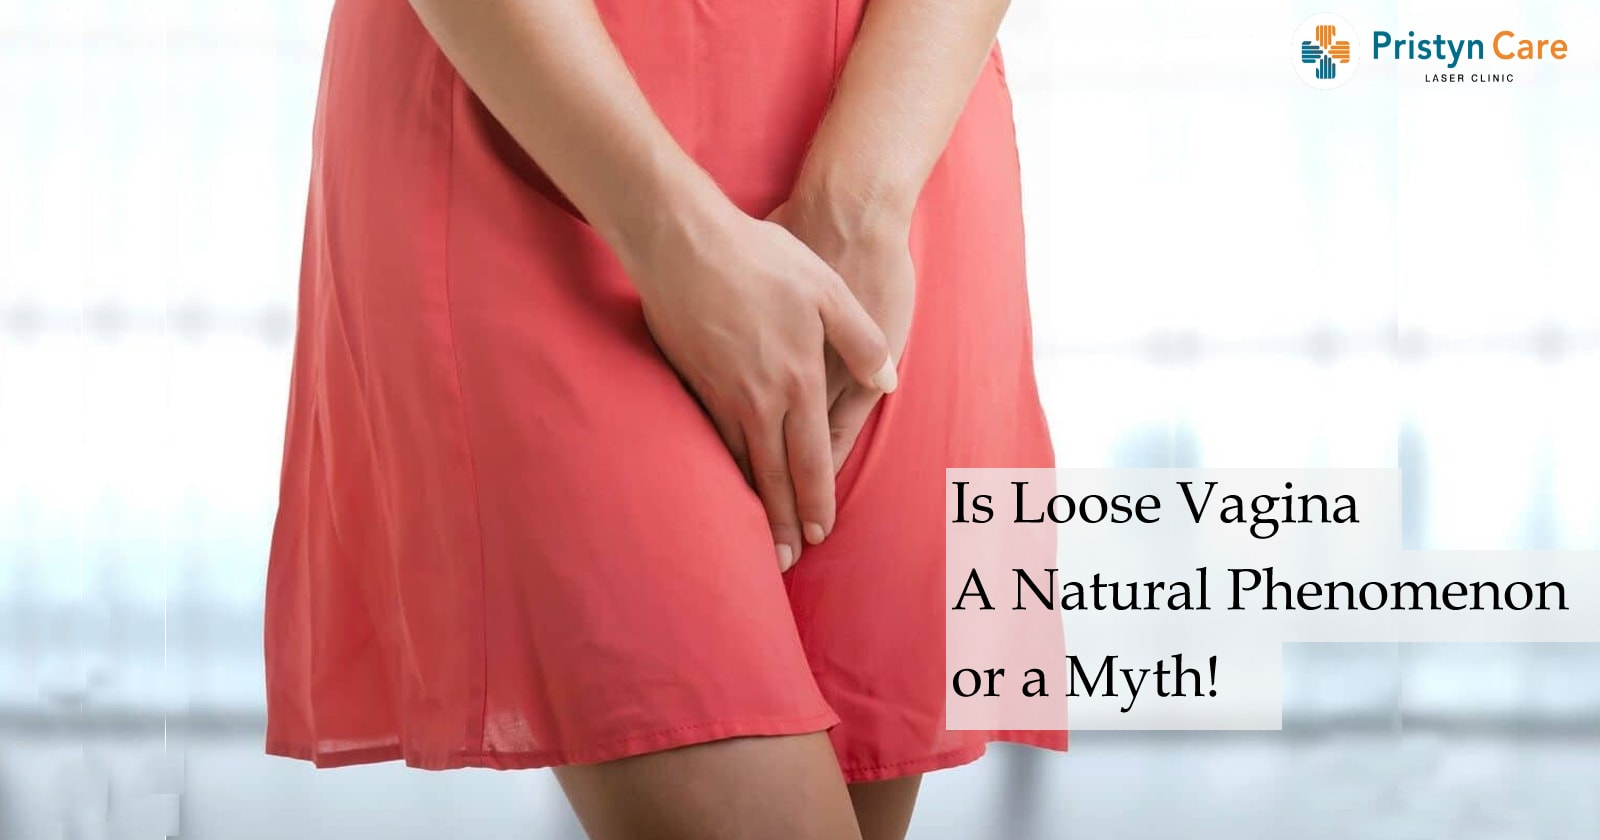 Is Loose Vagina A Natural Phenomenon or a Myth